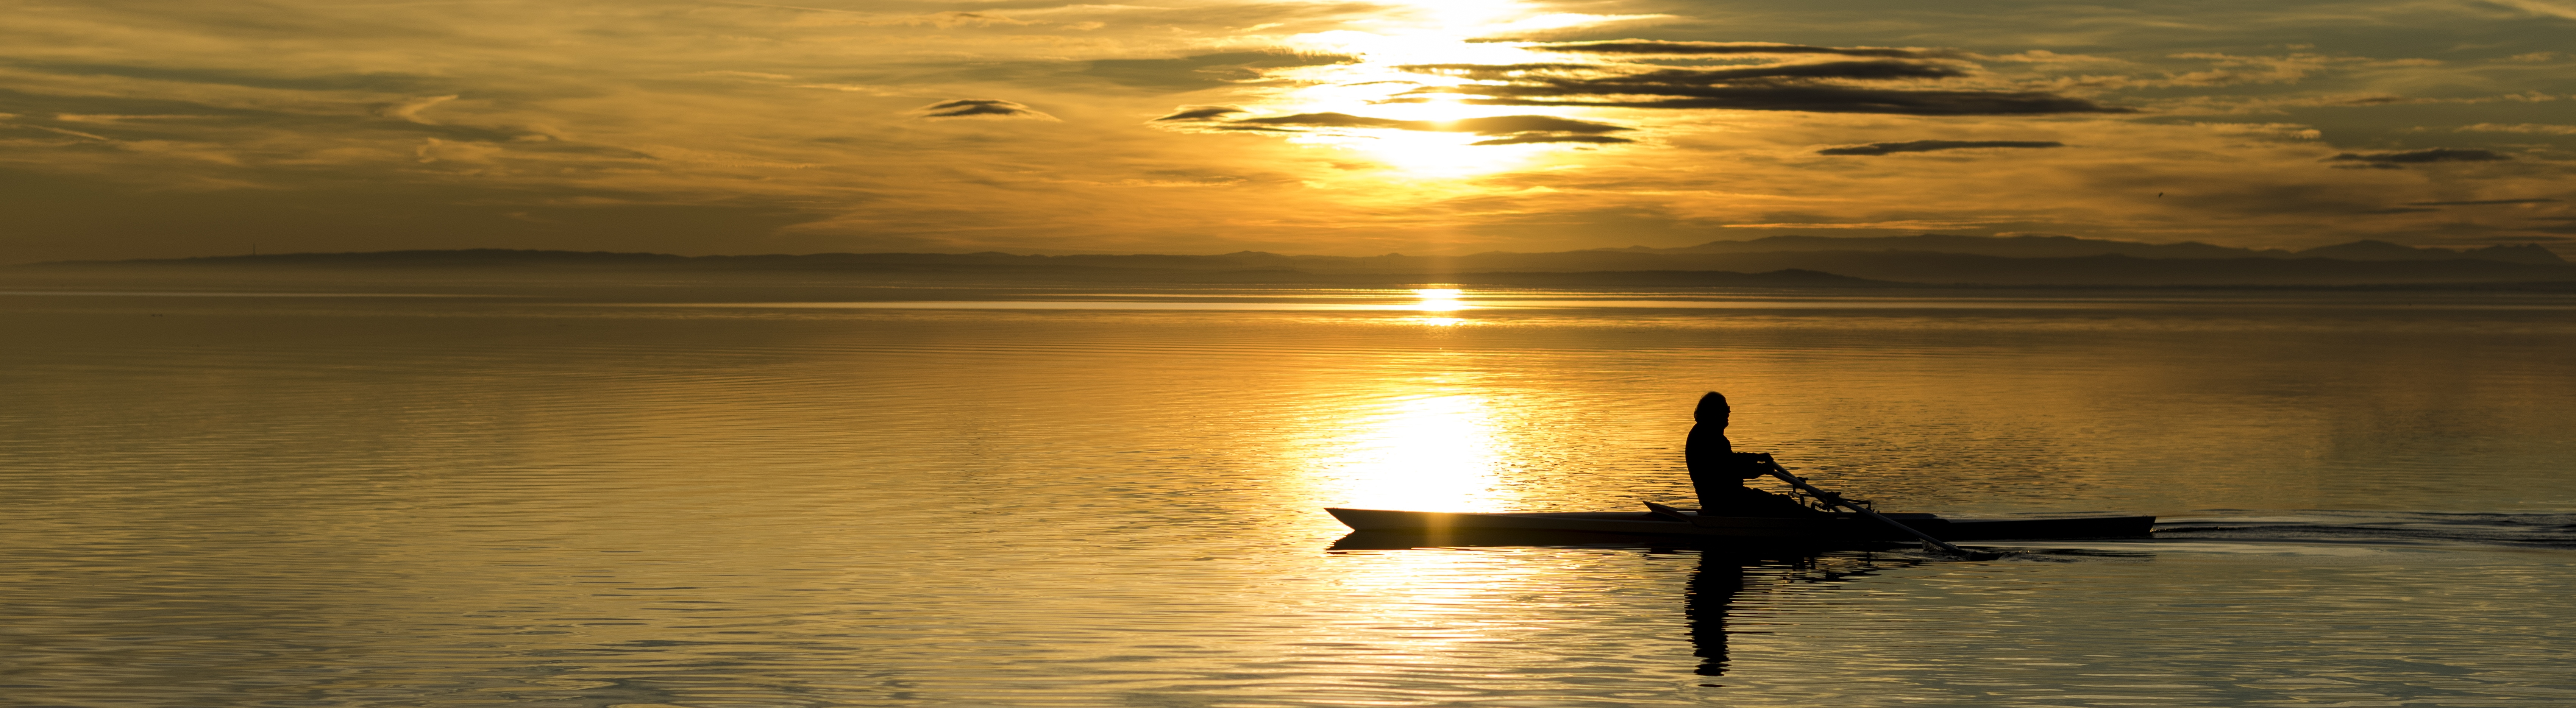 Rower at sunset